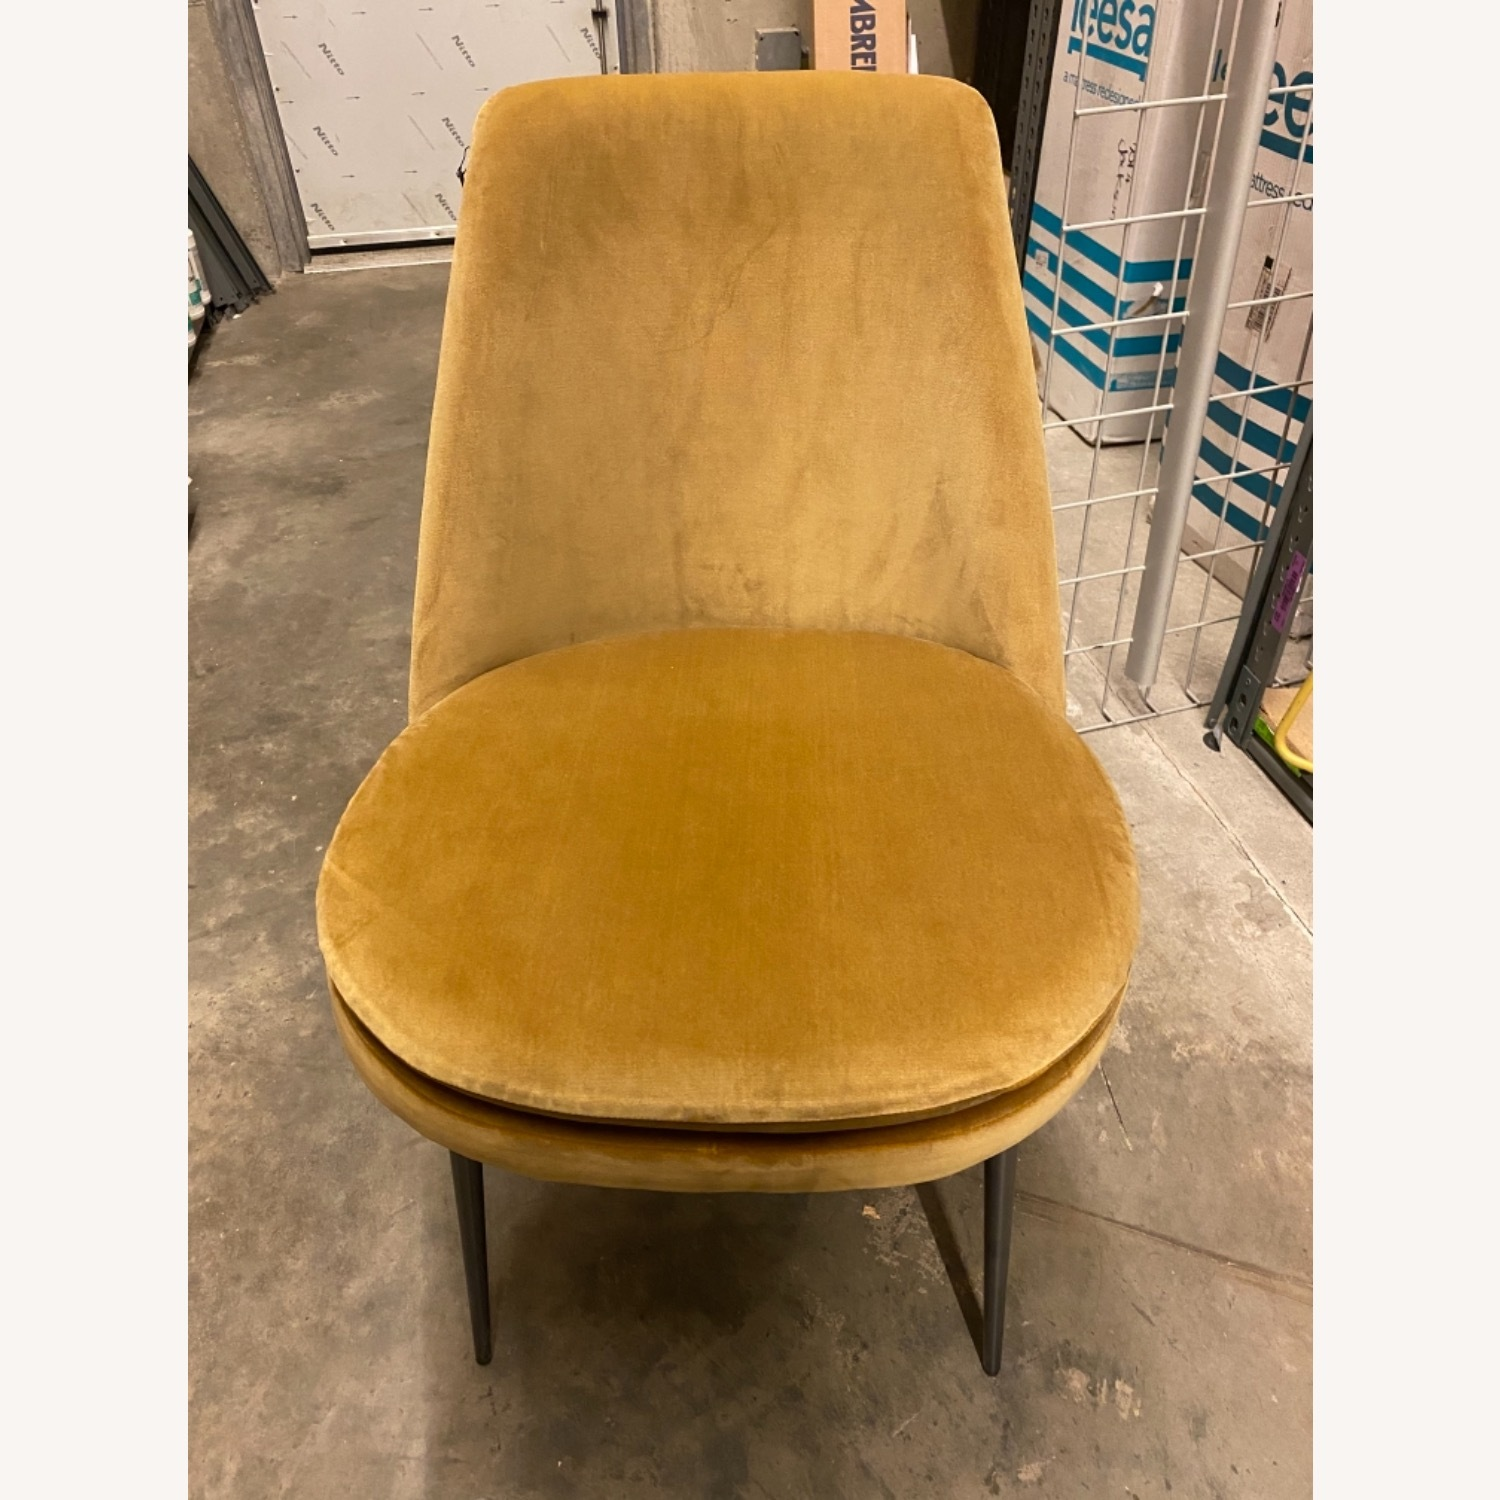 West Elm Finley LowBack Dining Chair - image-1